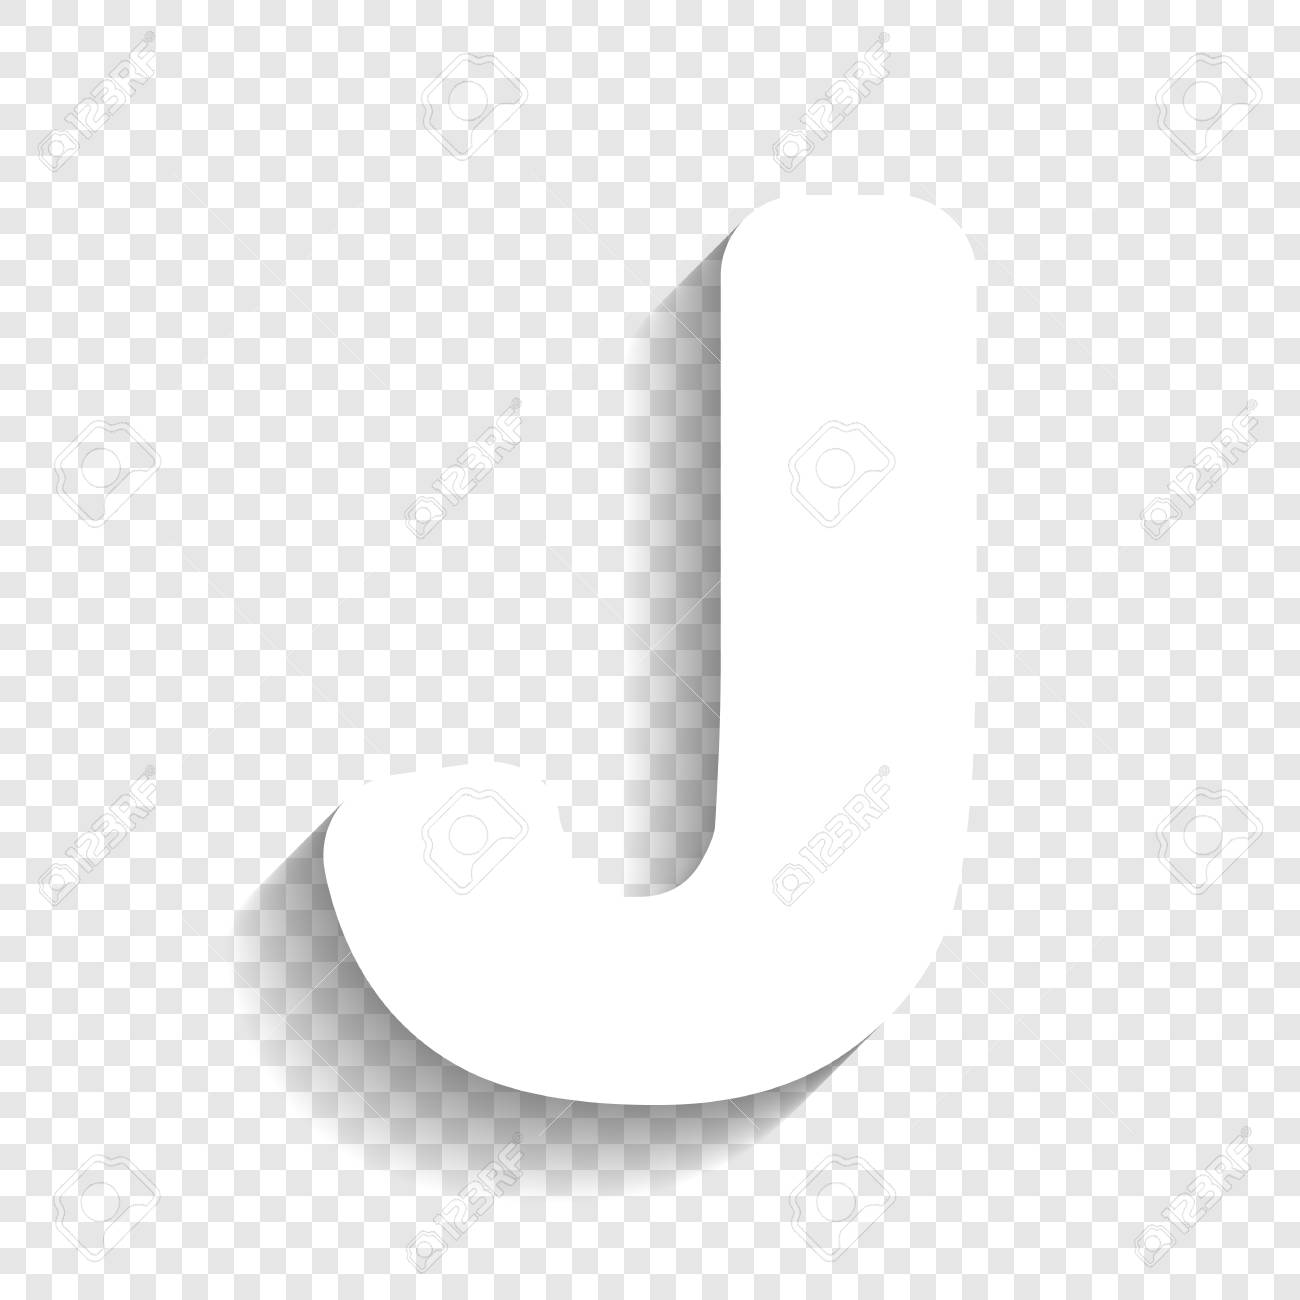 letter j sign design template element vector white icon with soft shadow on transparent